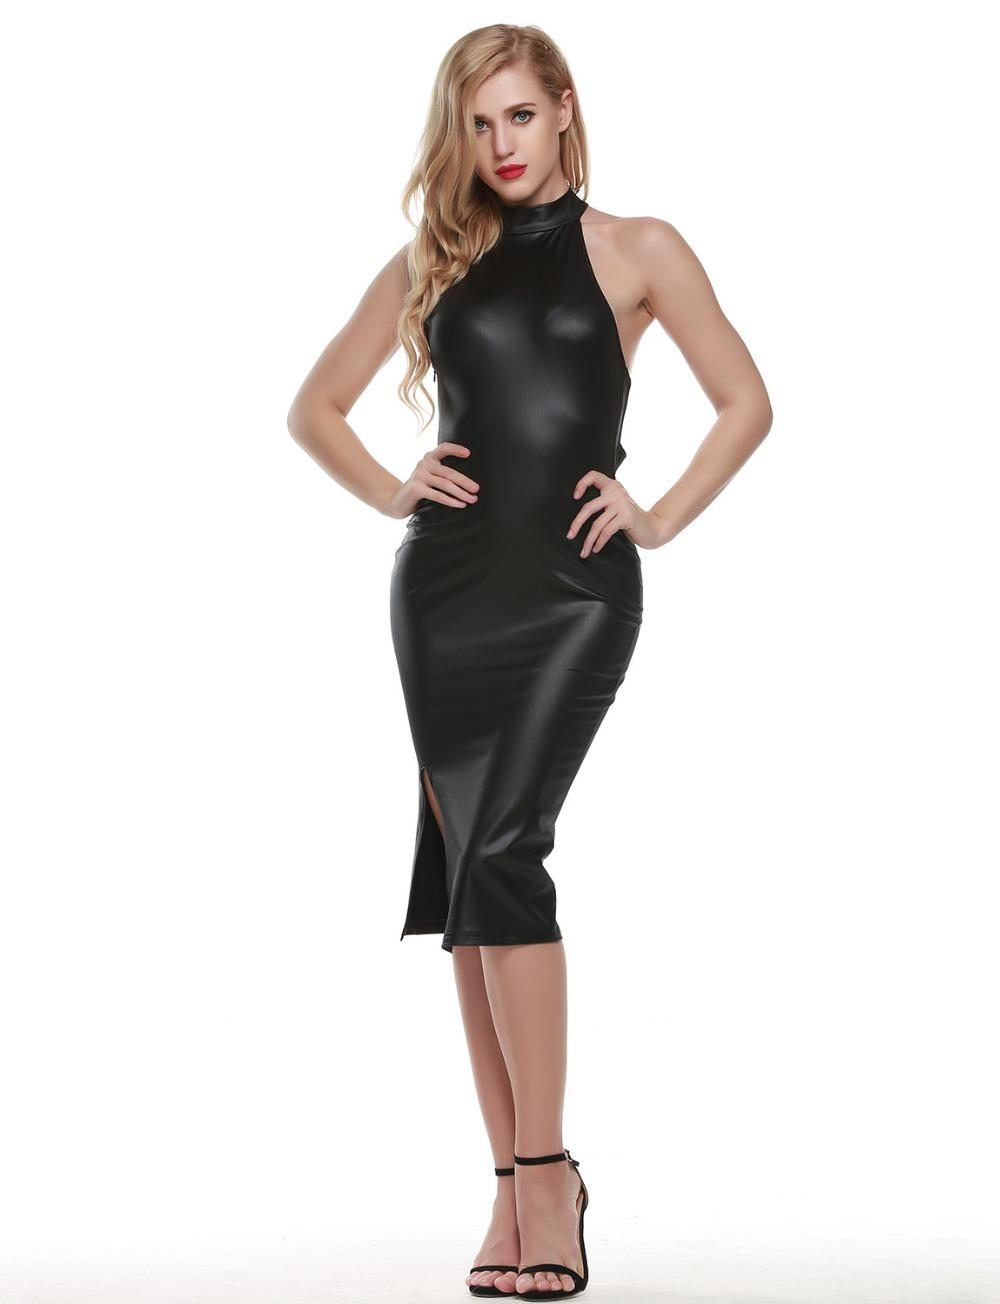 d80e06844 2019 Sexy Women Sleeveless Halter Patent Leather Dress Fashion Back Cross  Strap Costume Sexy Skinny Skirt Evening Dress From Fetishqueen, $23.97 |  DHgate.